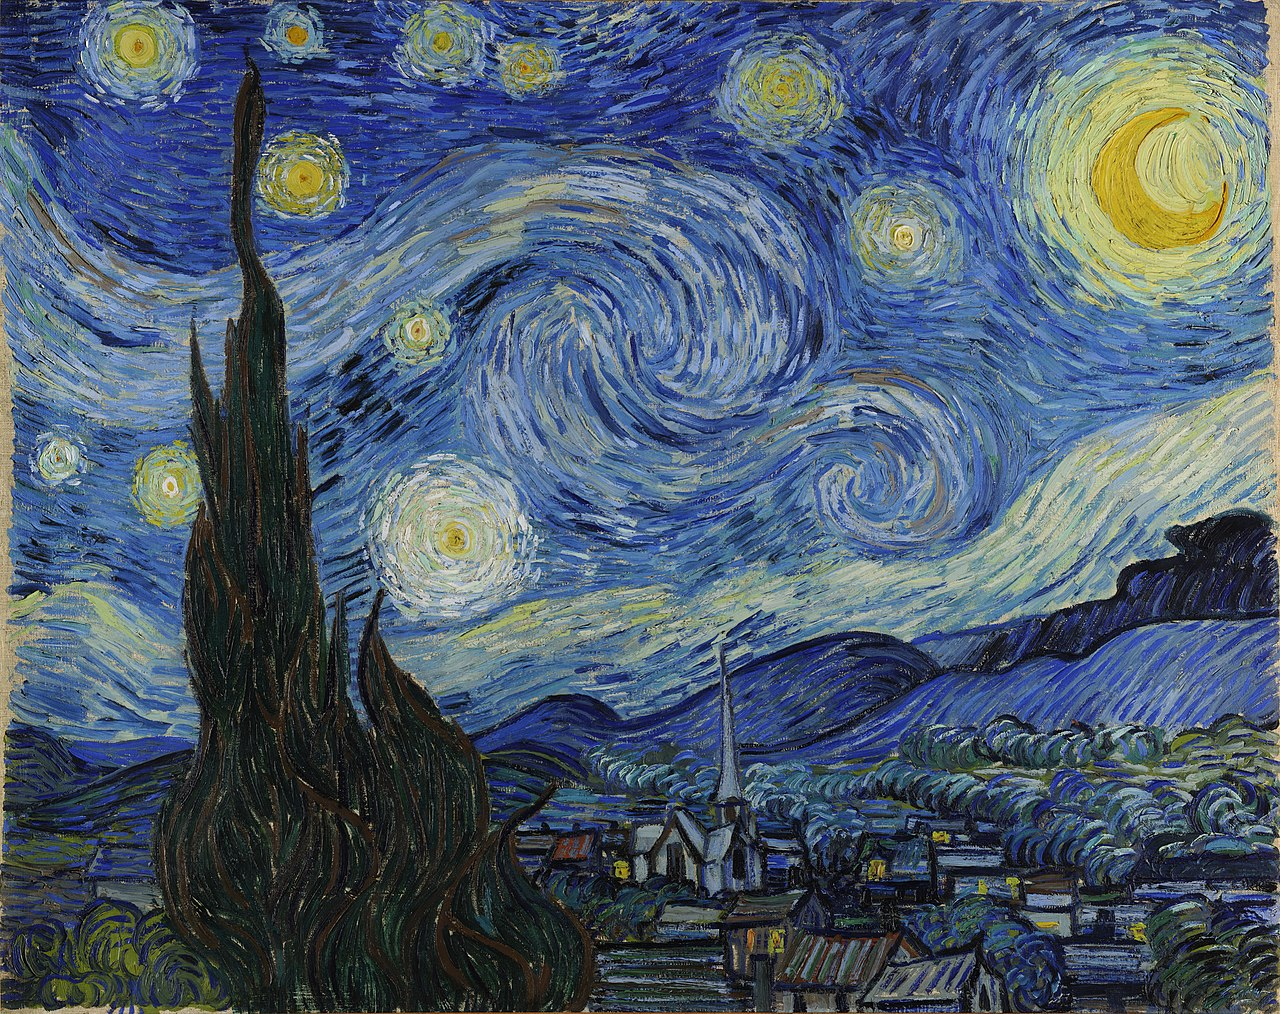 https://upload.wikimedia.org/wikipedia/commons/thumb/e/ea/Van_Gogh_-_Starry_Night_-_Google_Art_Project.jpg/1280px-Van_Gogh_-_Starry_Night_-_Google_Art_Project.jpg